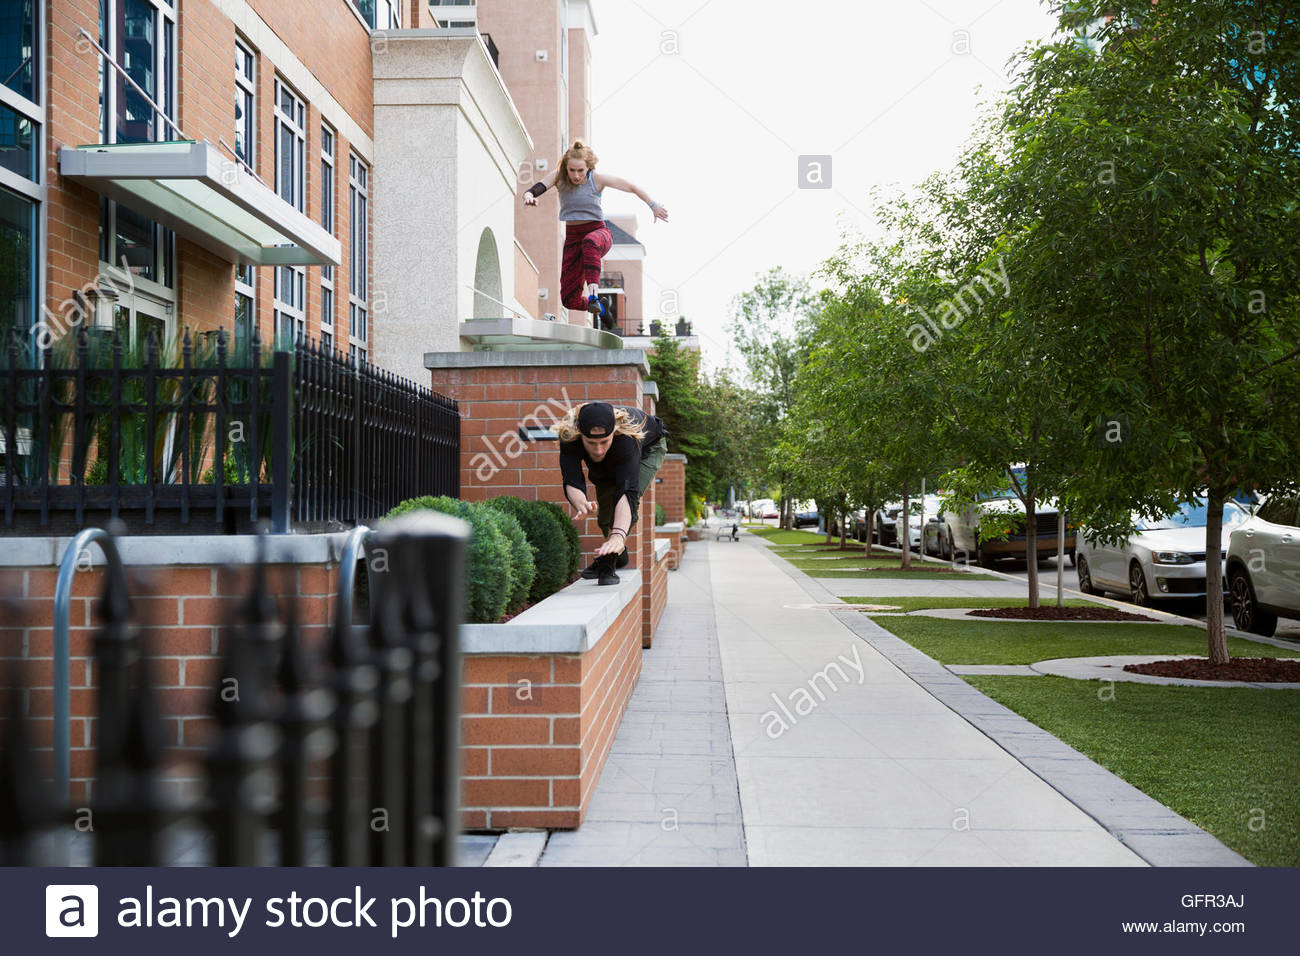 Young woman doing free running parkour along ledges - Stock Image